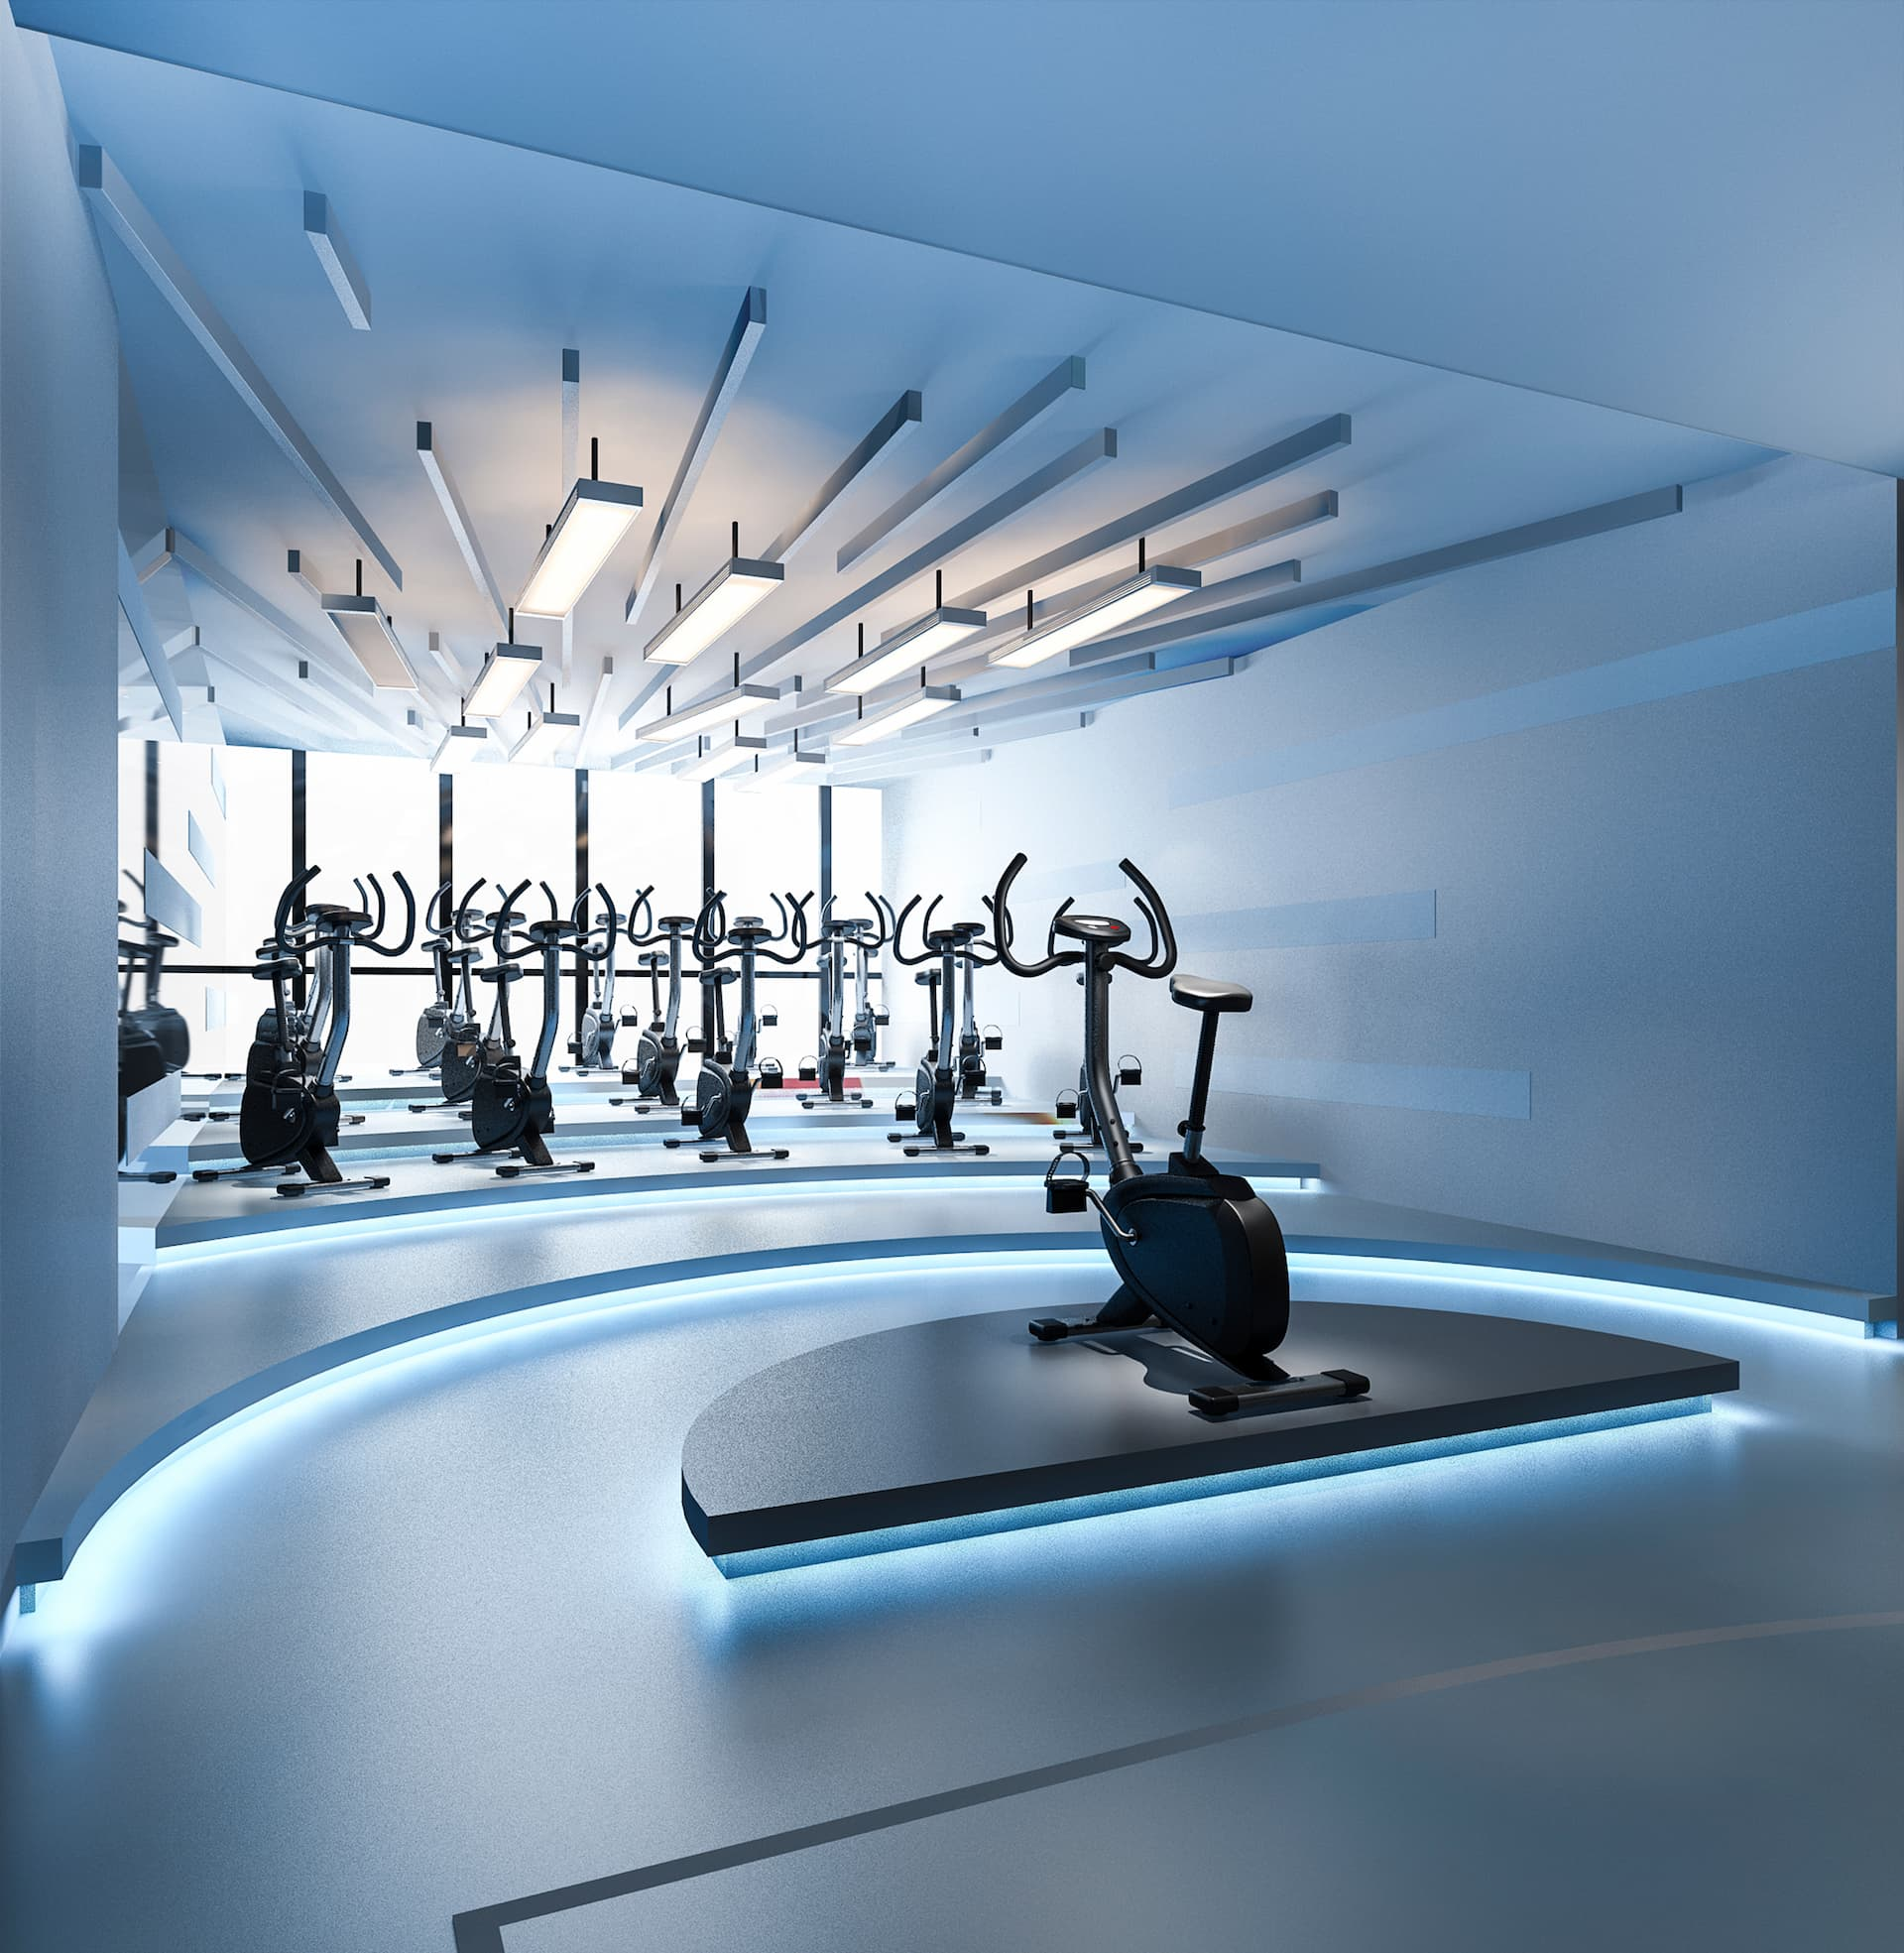 rendering of gym cycling room